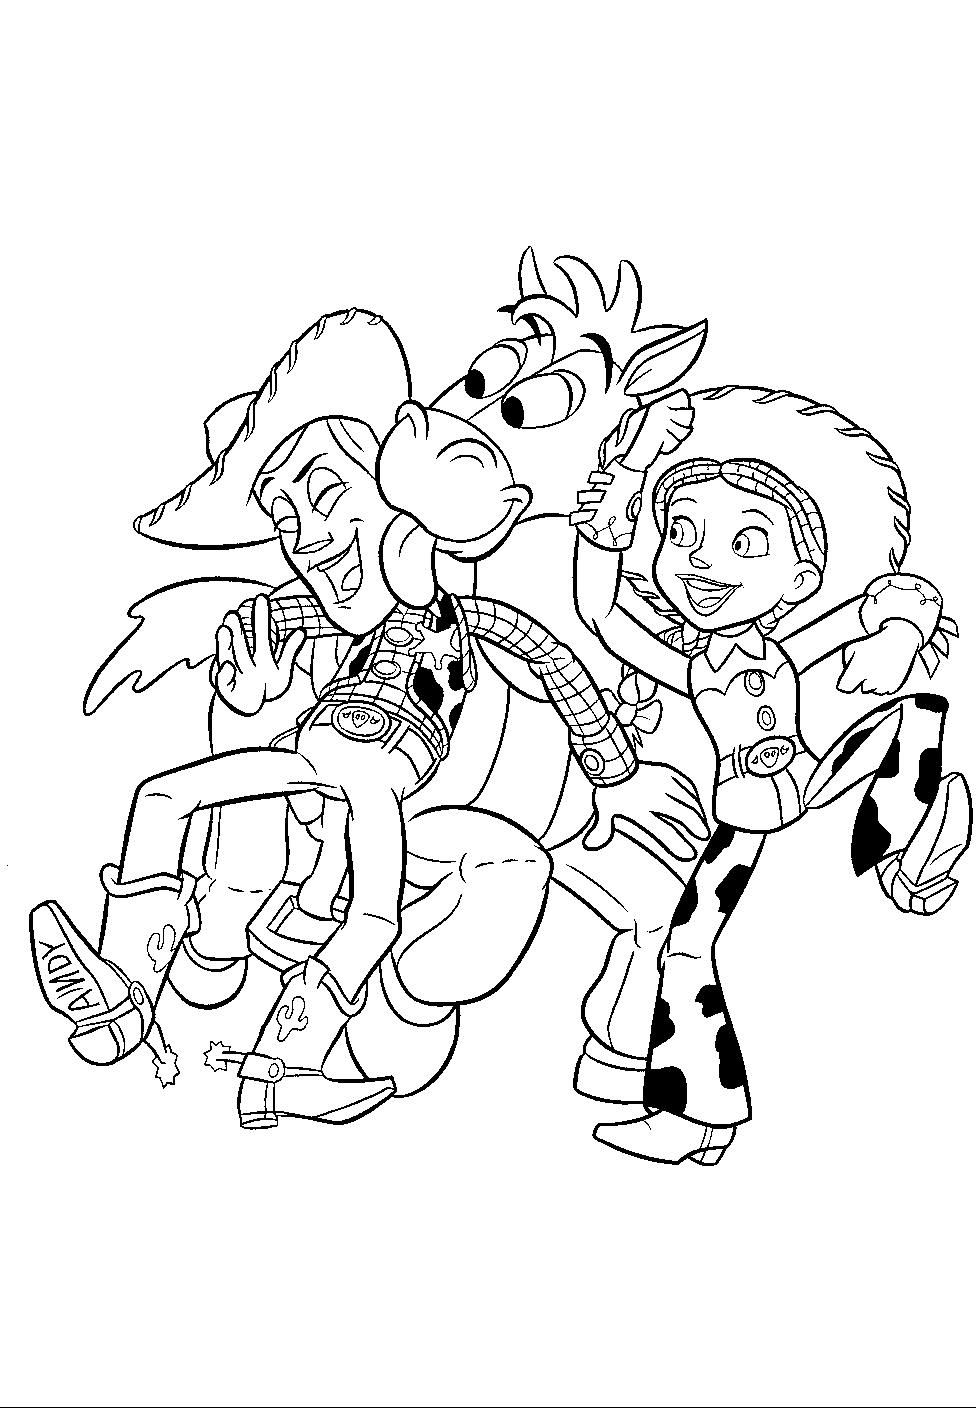 Toy Story Coloring Page Toy Story Coloring Pages Disney